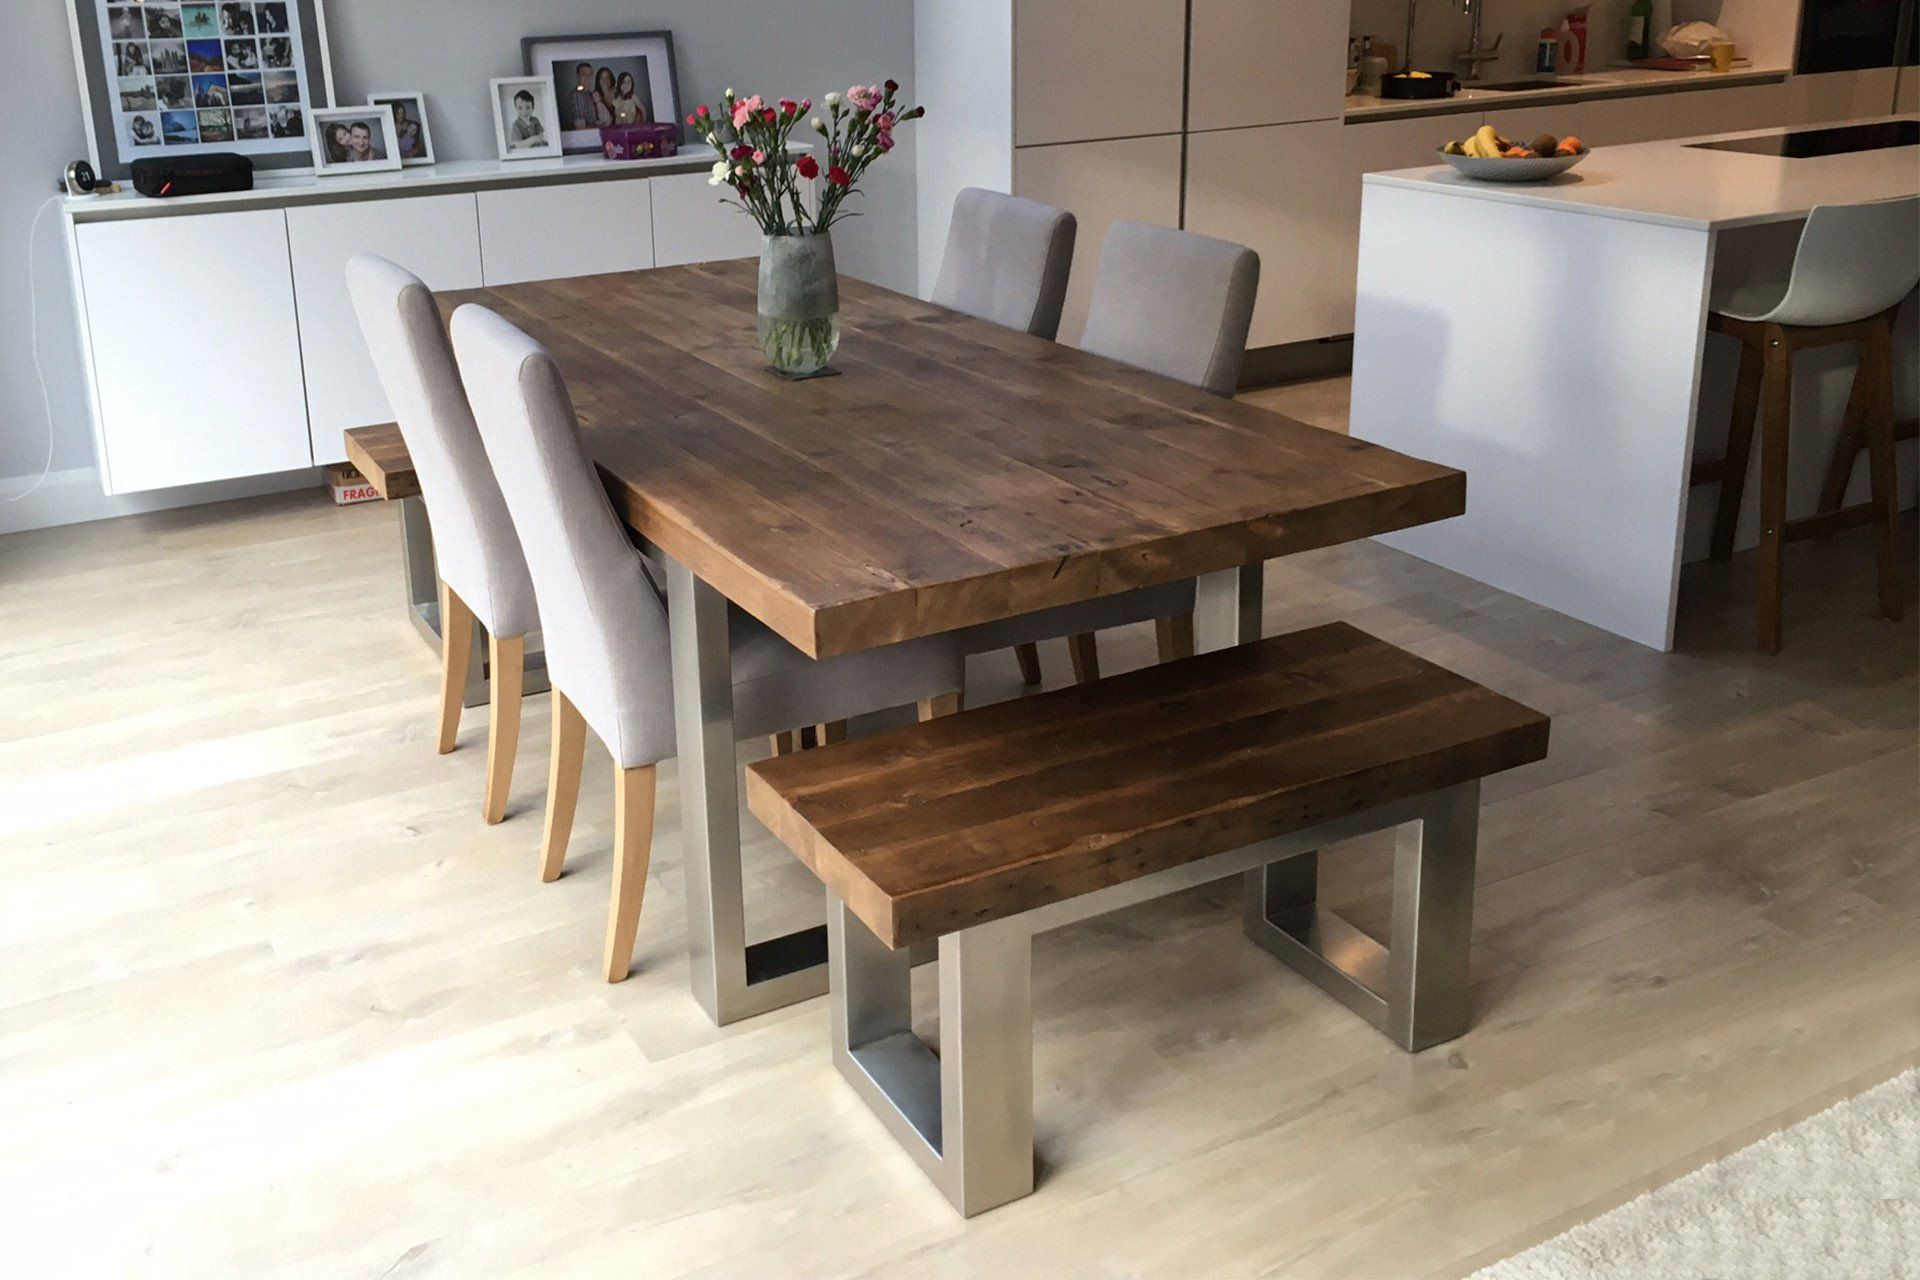 Cavendish Dining Table Long Overhang In 2020 Large Wooden